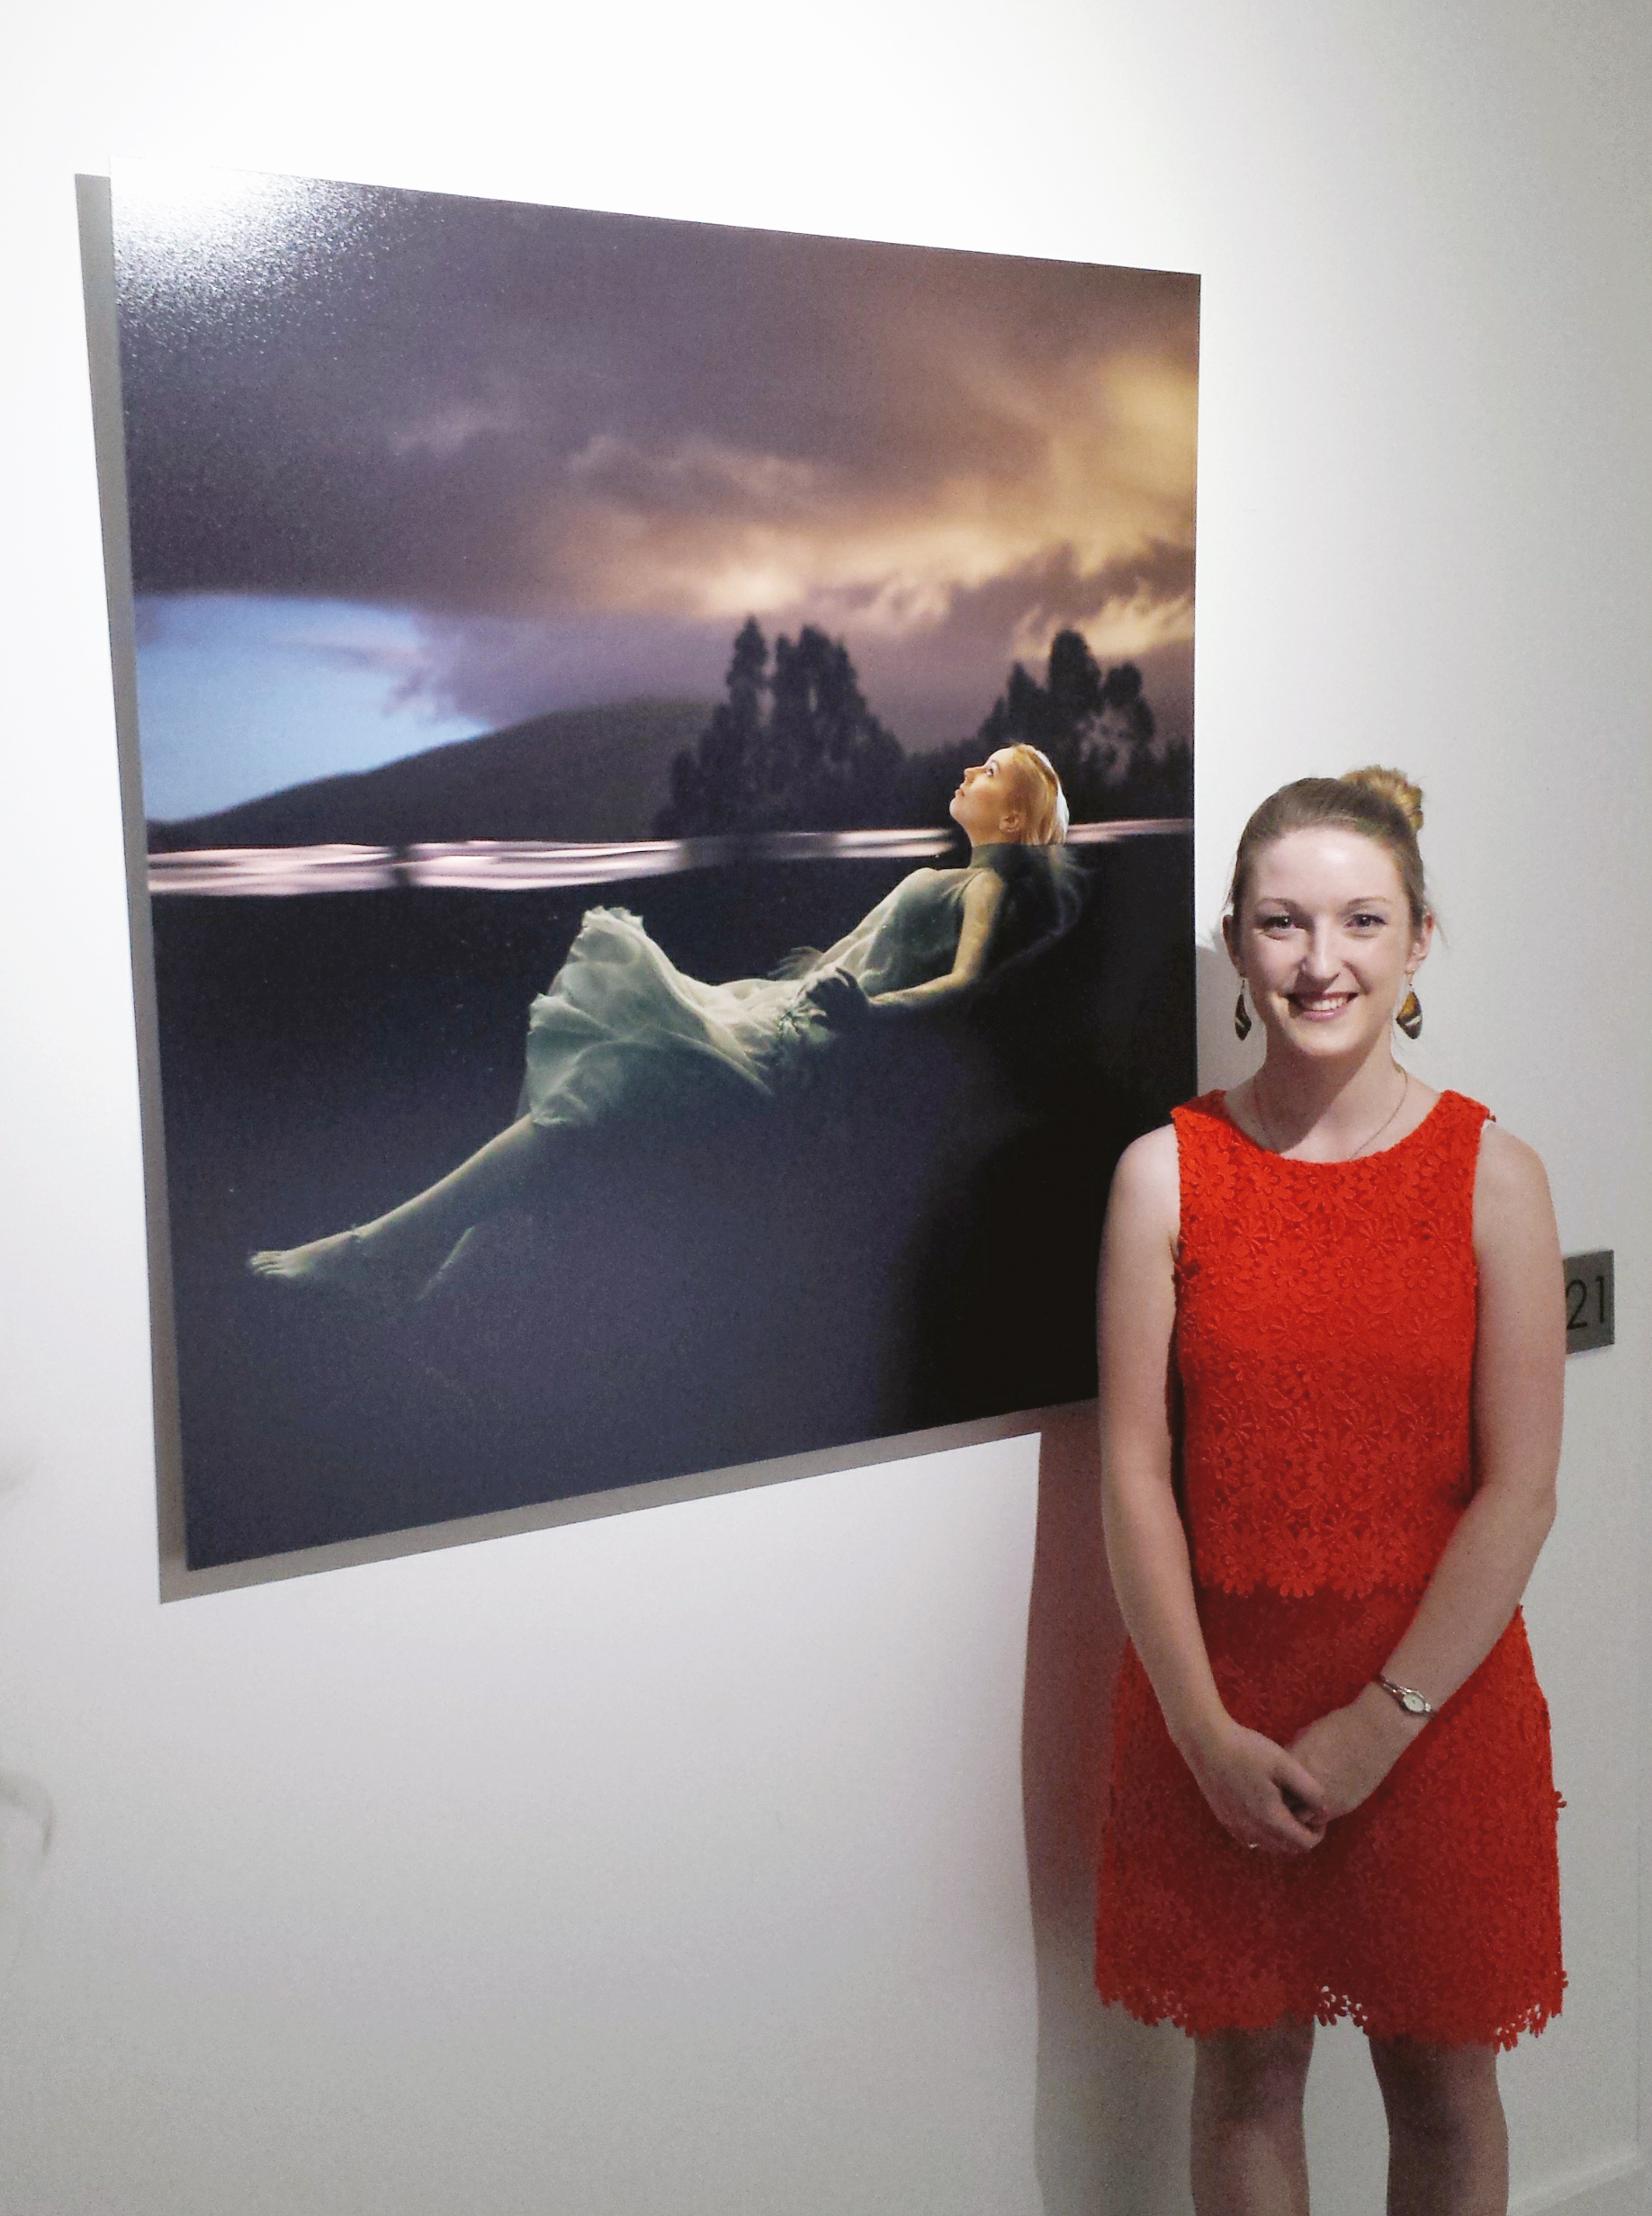 Julia Nance with her printed fine art portrait 'Swan' on permanent exhibition at the 2 Girls Building in Abbotsford.